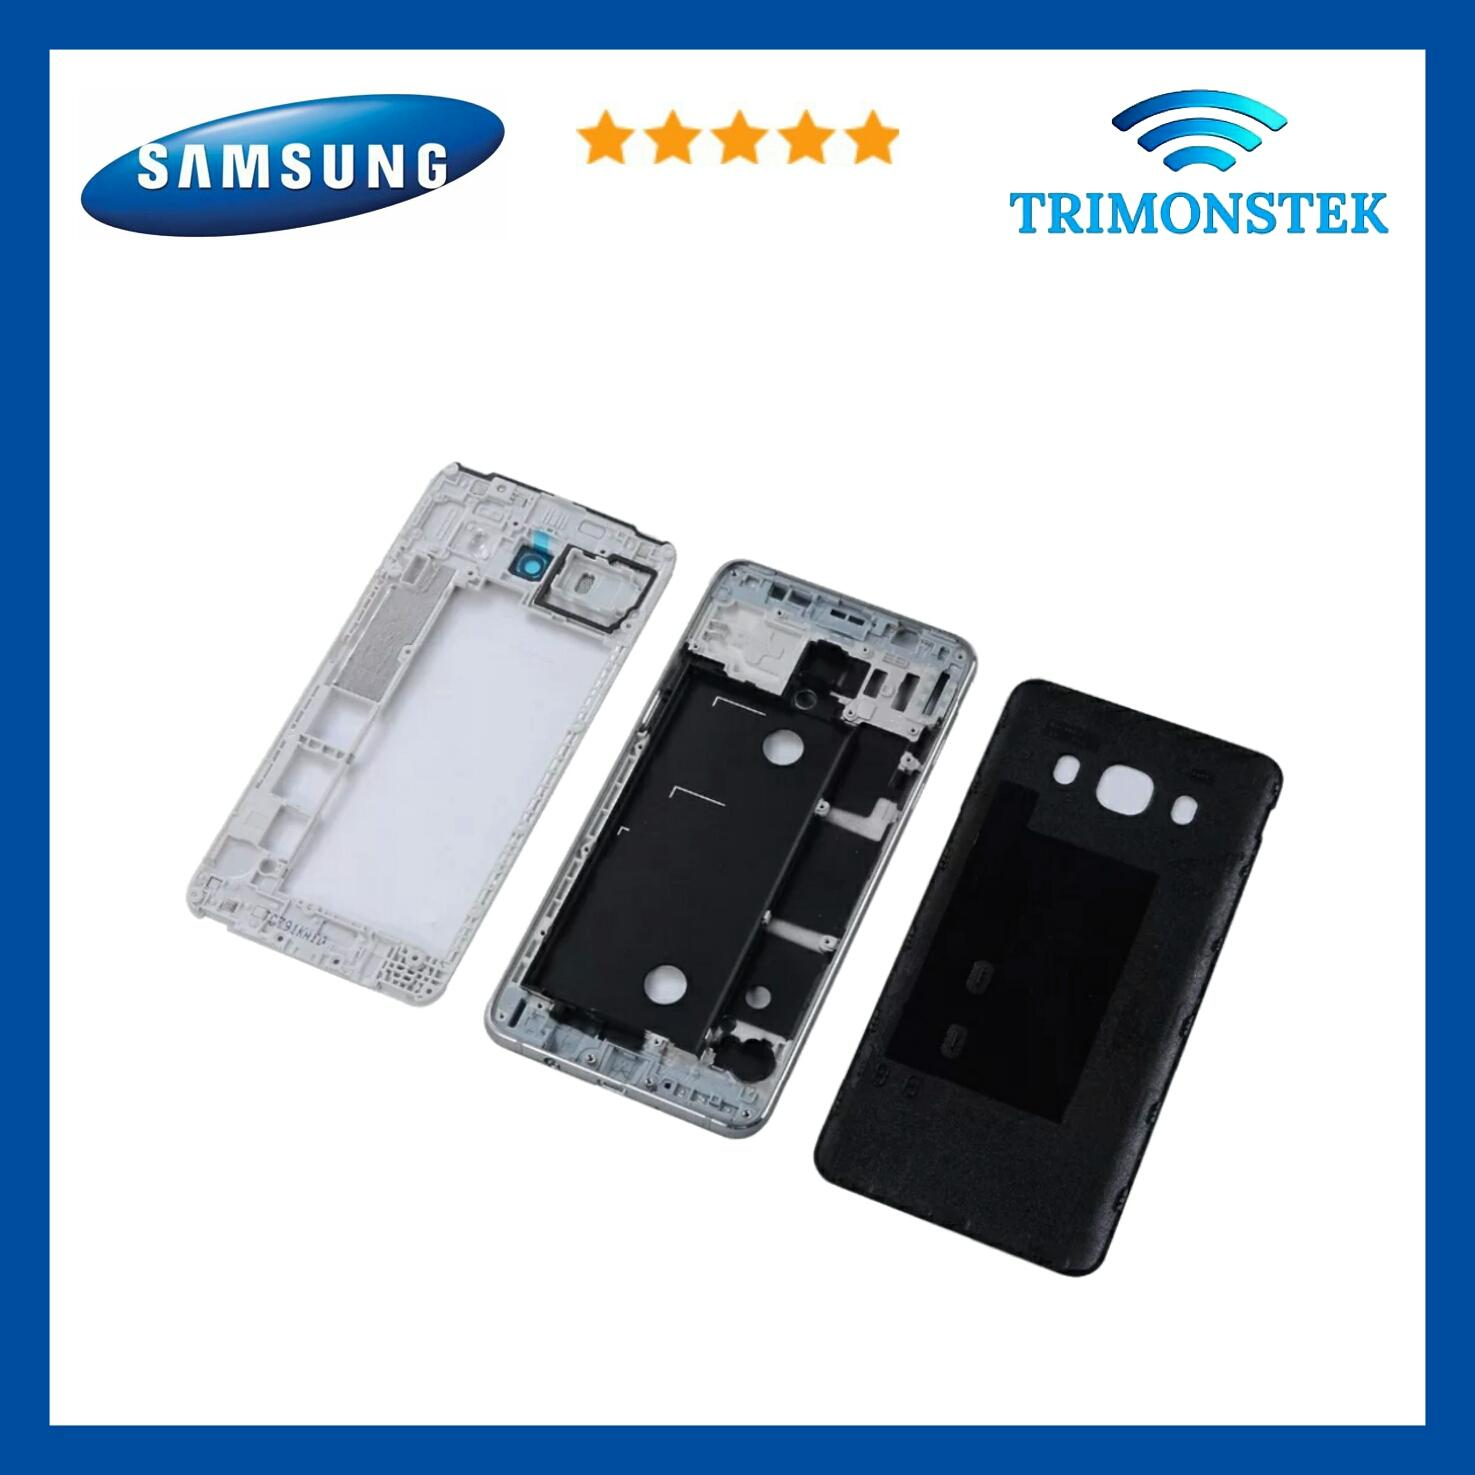 Detail Gambar Housing Casing Fullset Samsung Galaxy J5 2016 J510 Terbaru